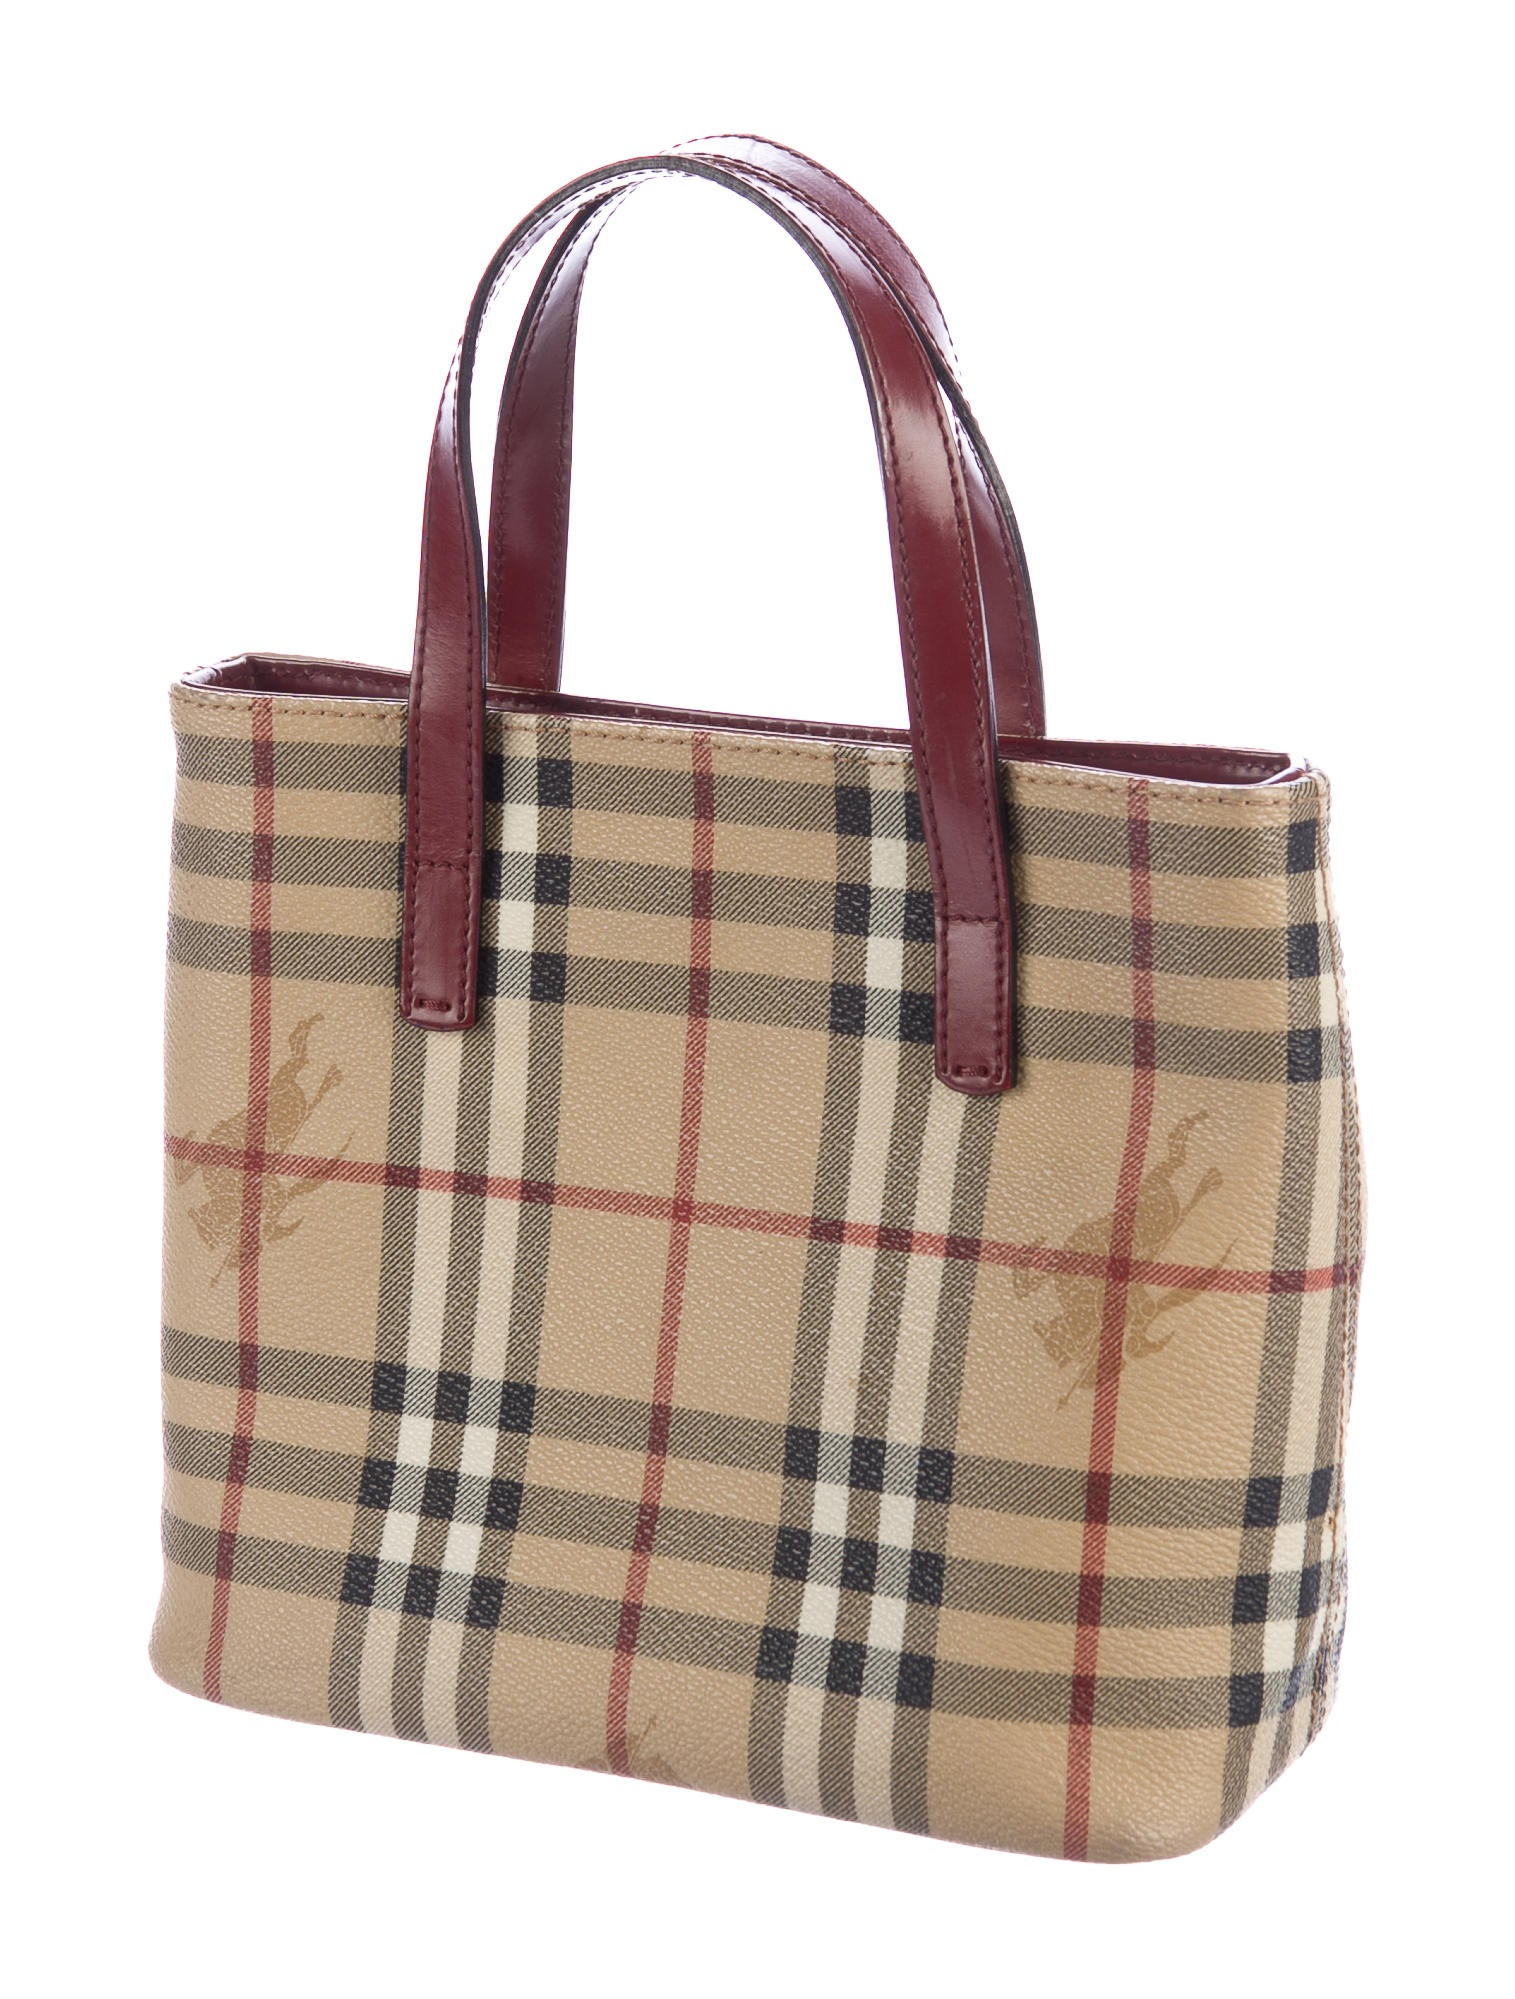 0b7fc827325e Burberry Haymarket Check Tote At The Outlet | Stanford Center for ...